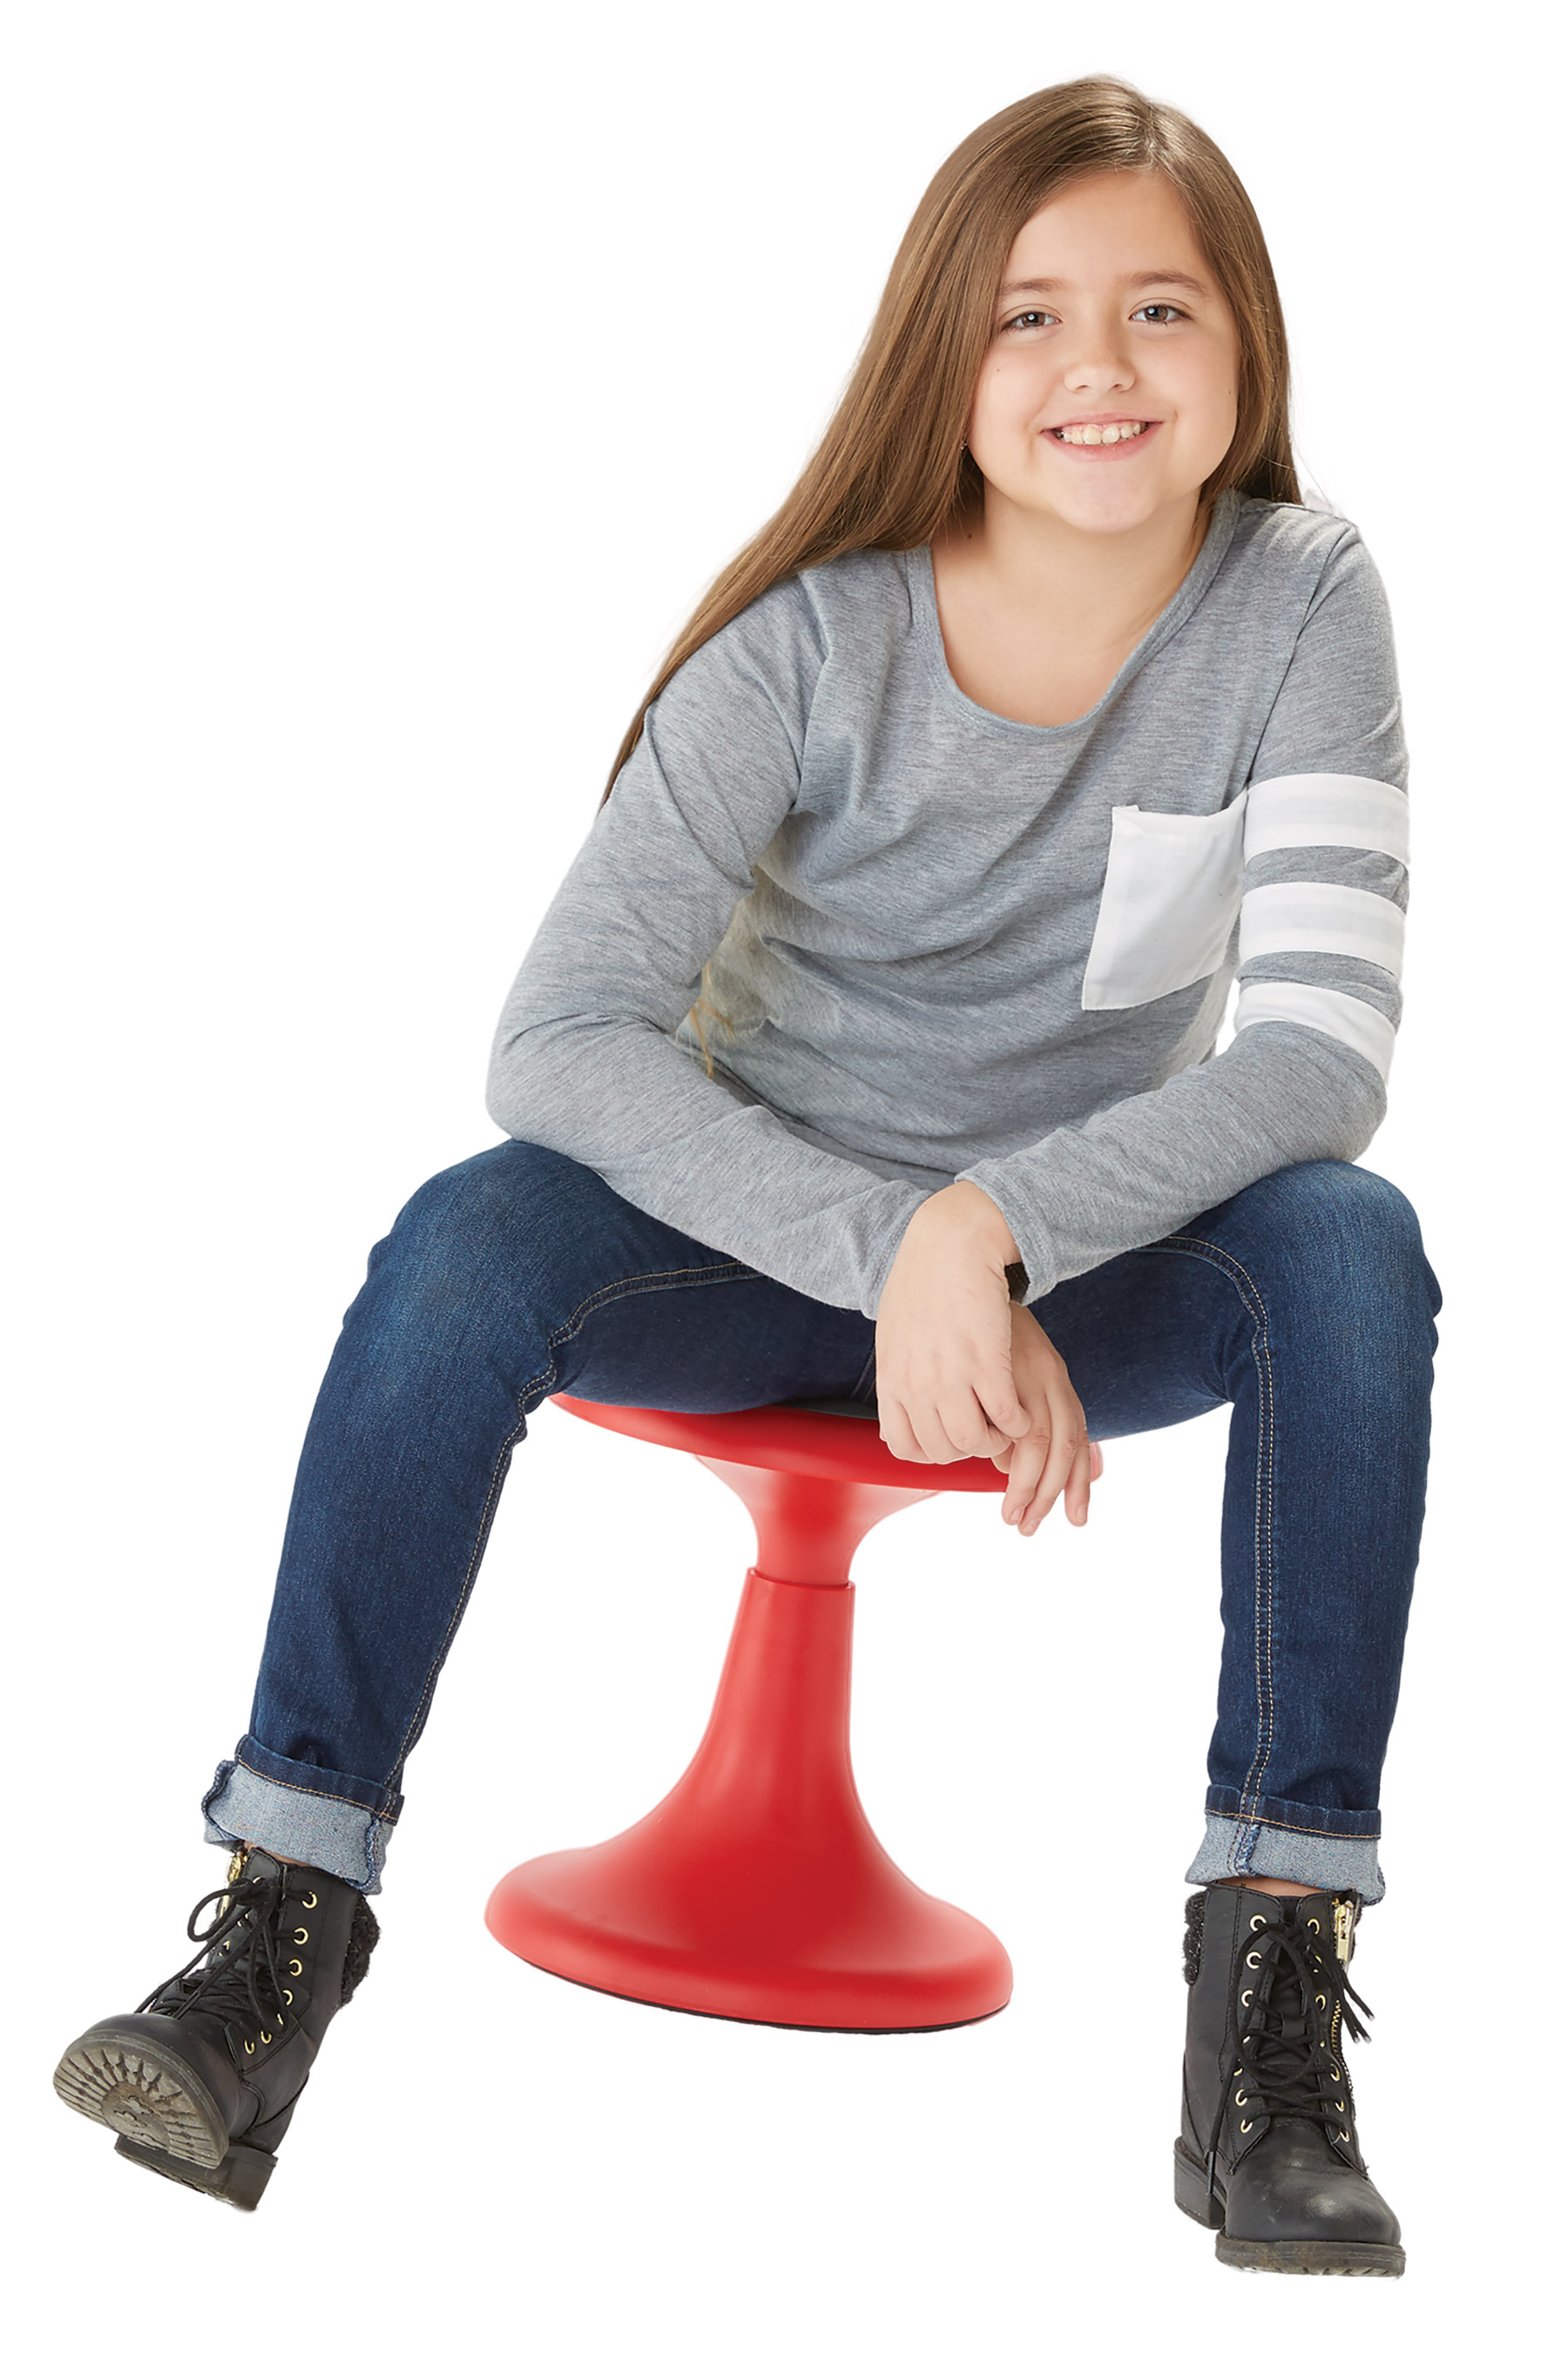 The Kore stool for your active learning environment.